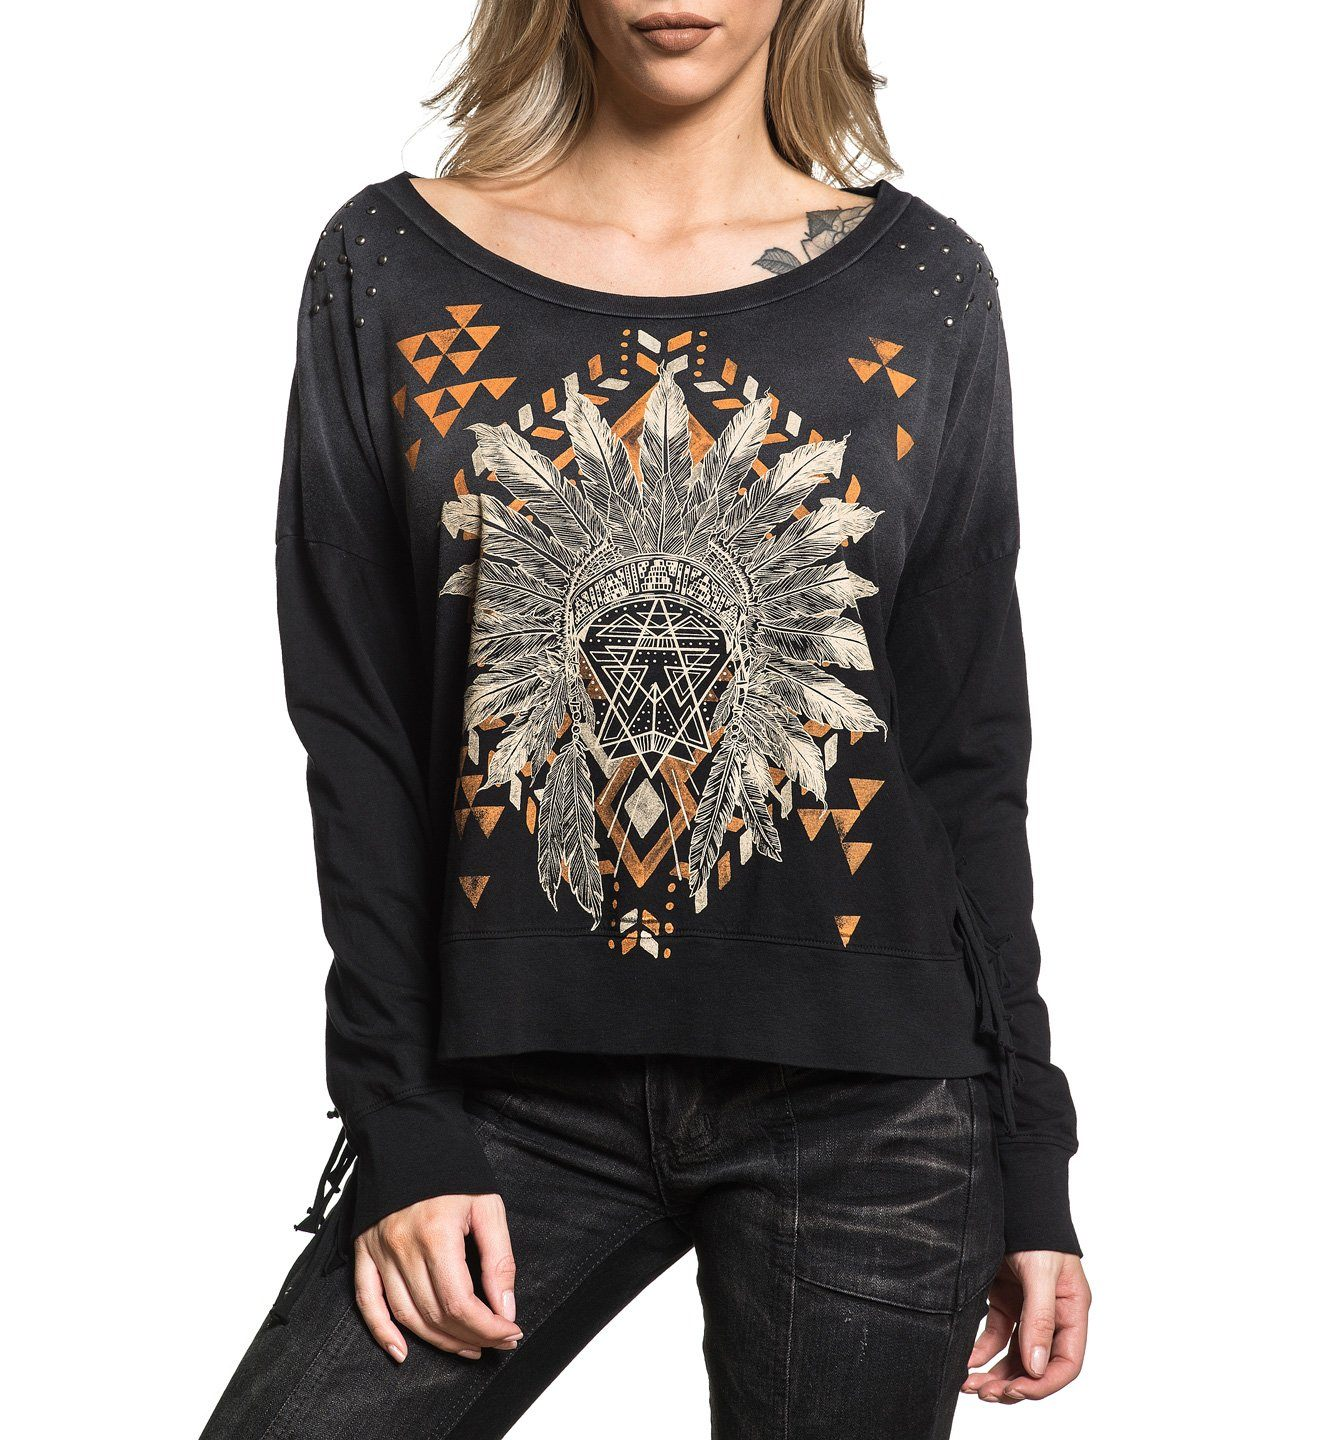 Trailhead - Womens Long Sleeve Tees - Affliction Clothing